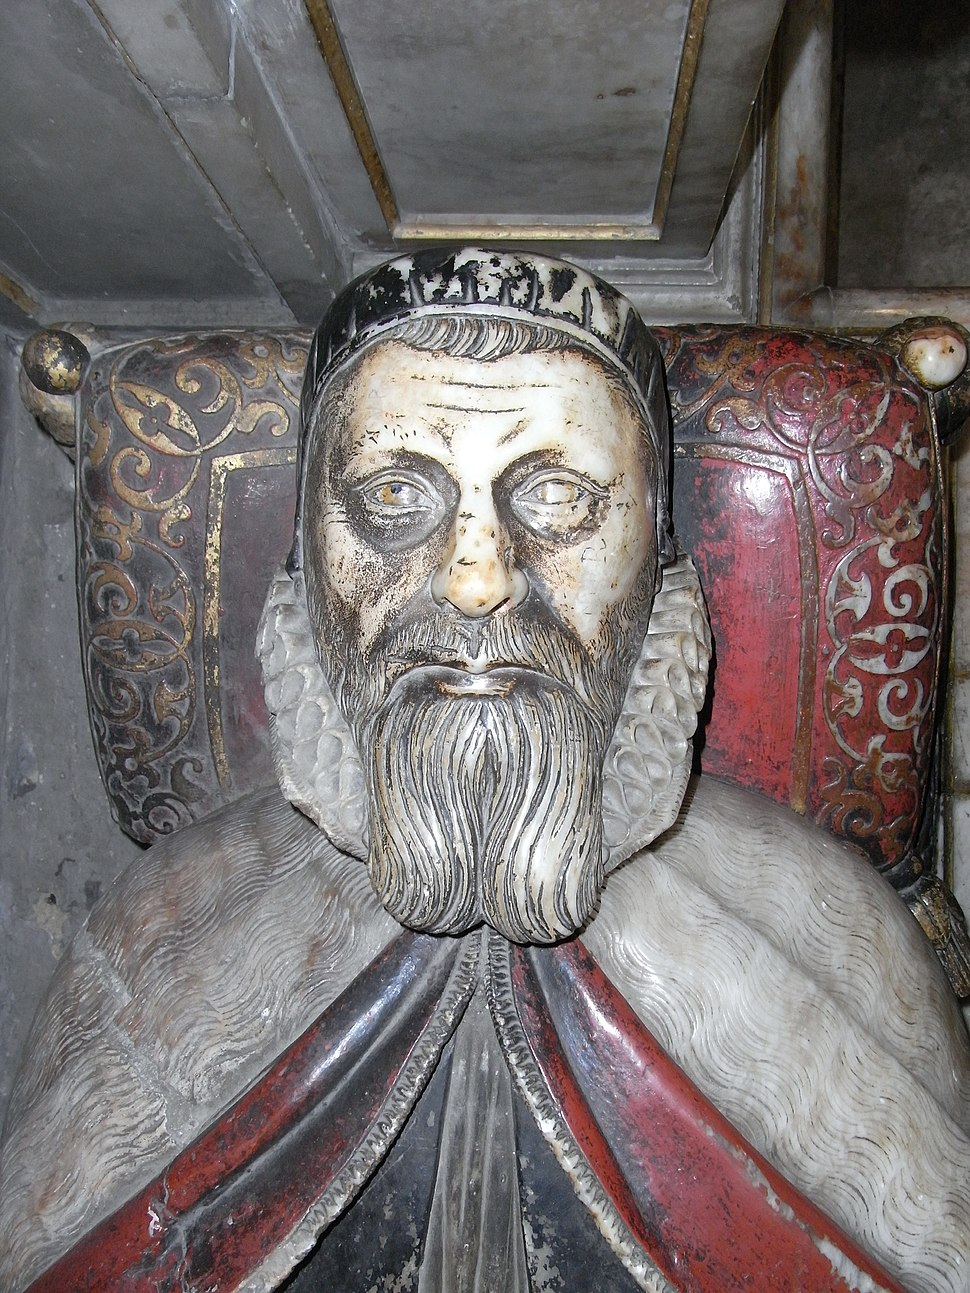 Effigy of John Still at his tomb in Wells Cathedral, Somerset, UK - 20100930